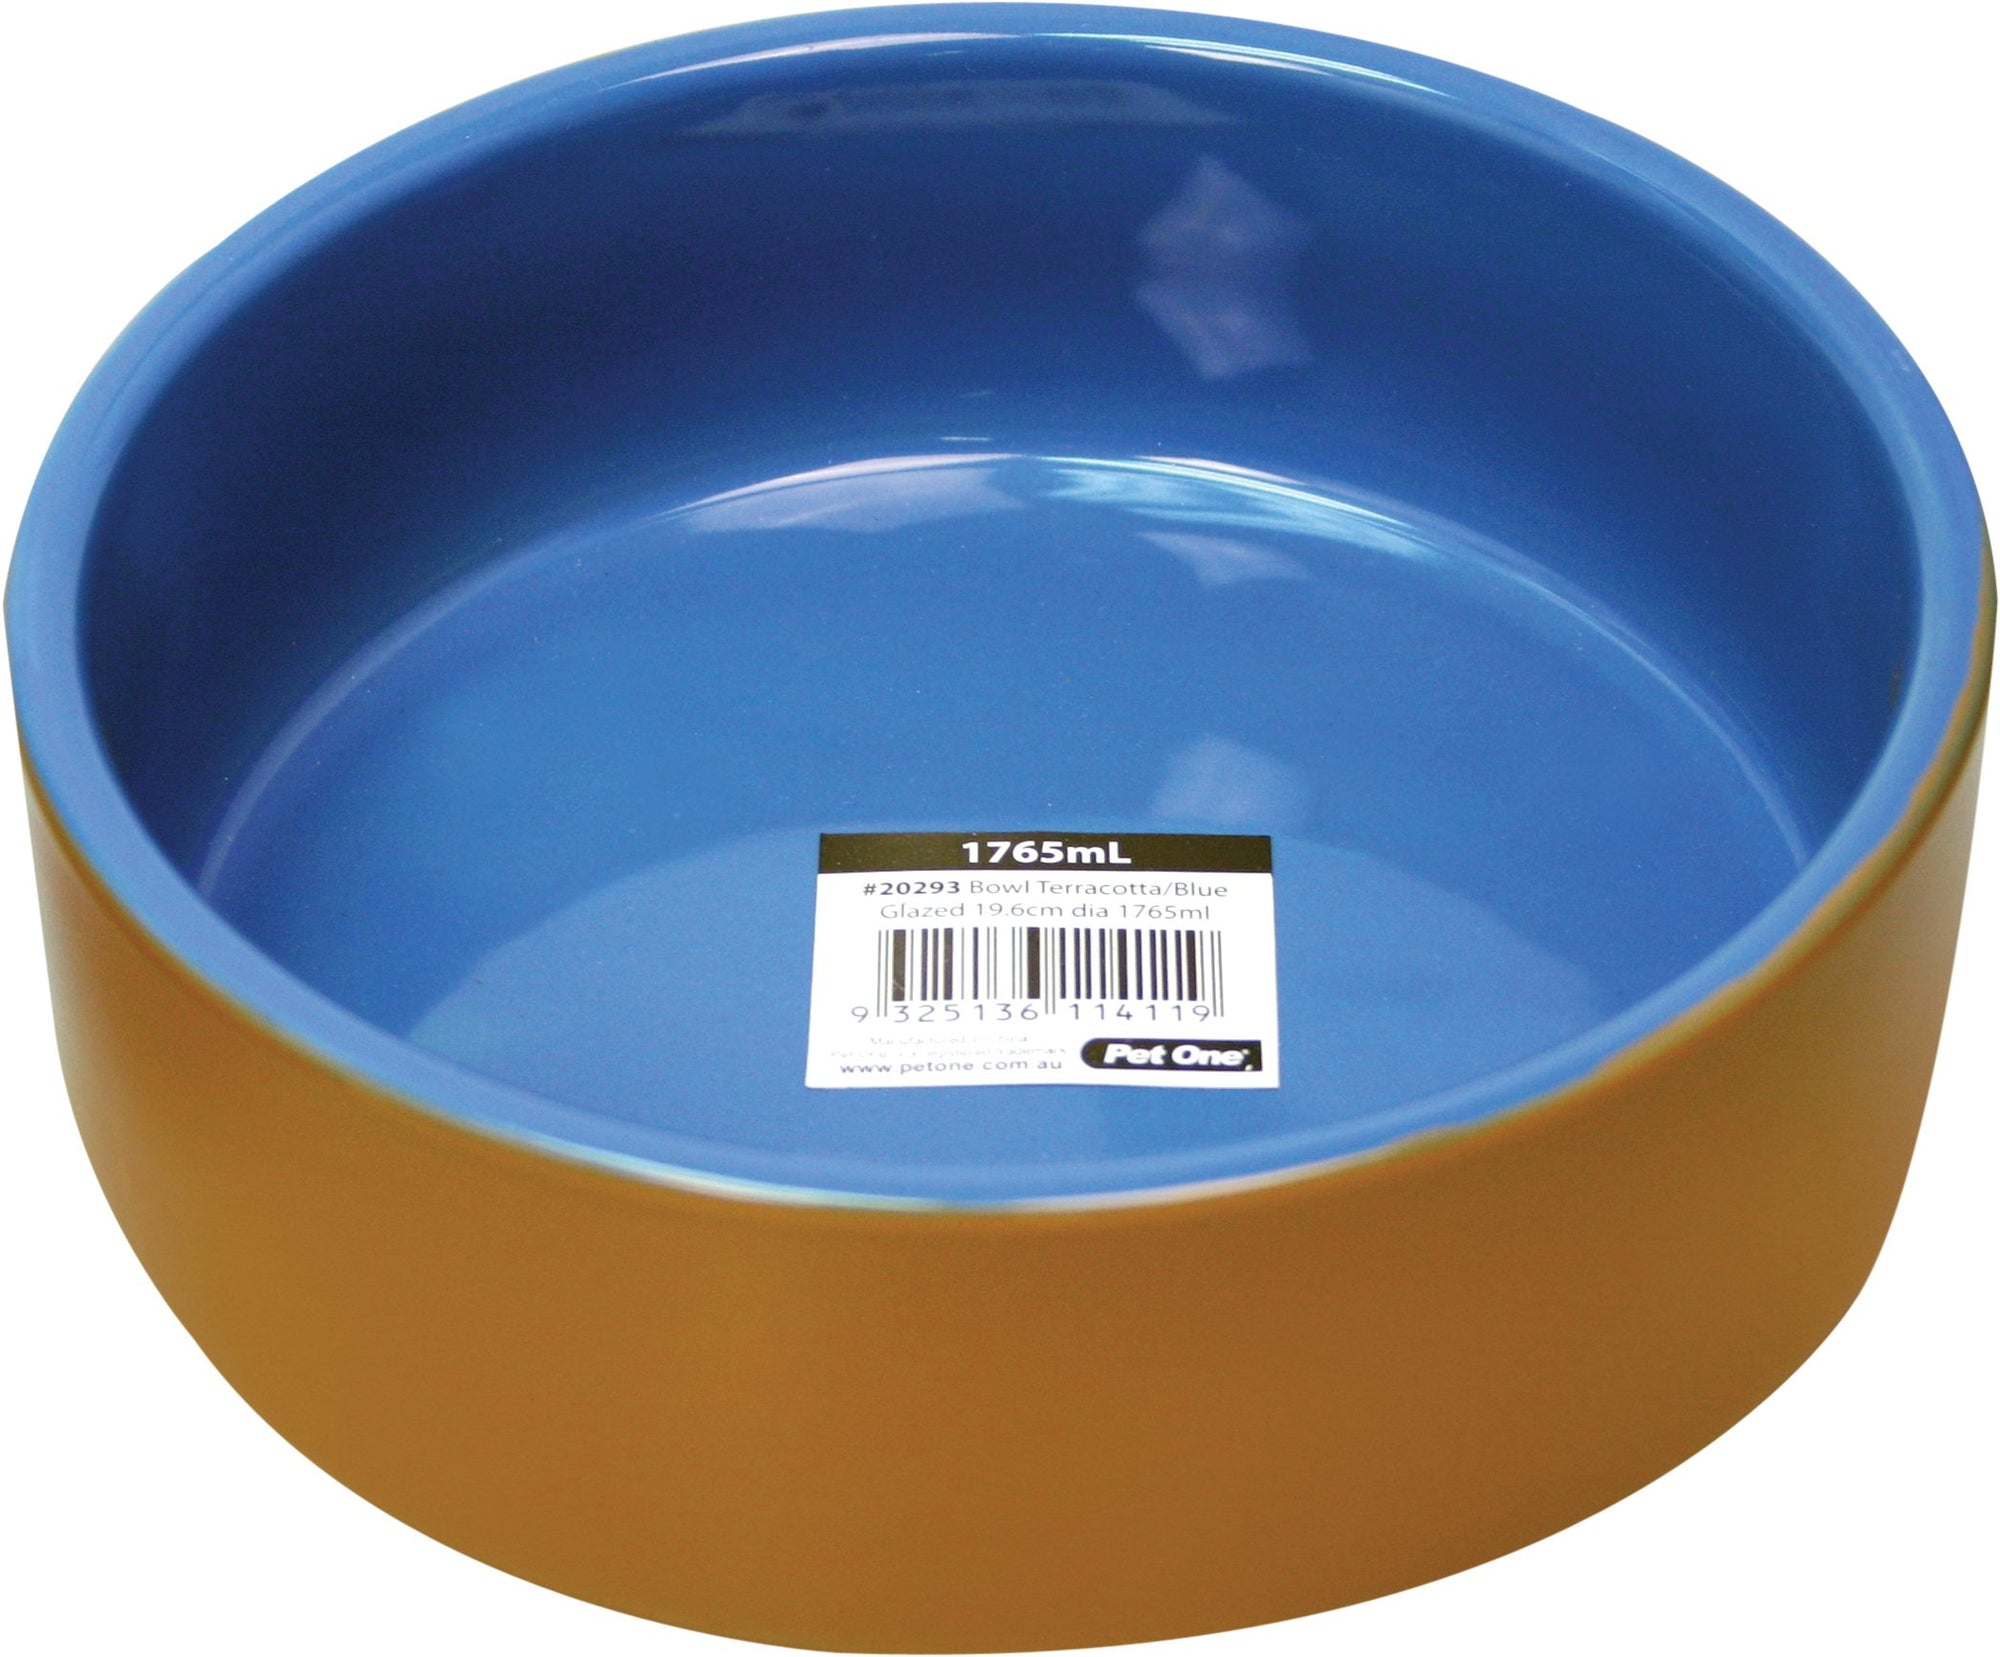 Pet One Terracotta Bowl Blue Glazed